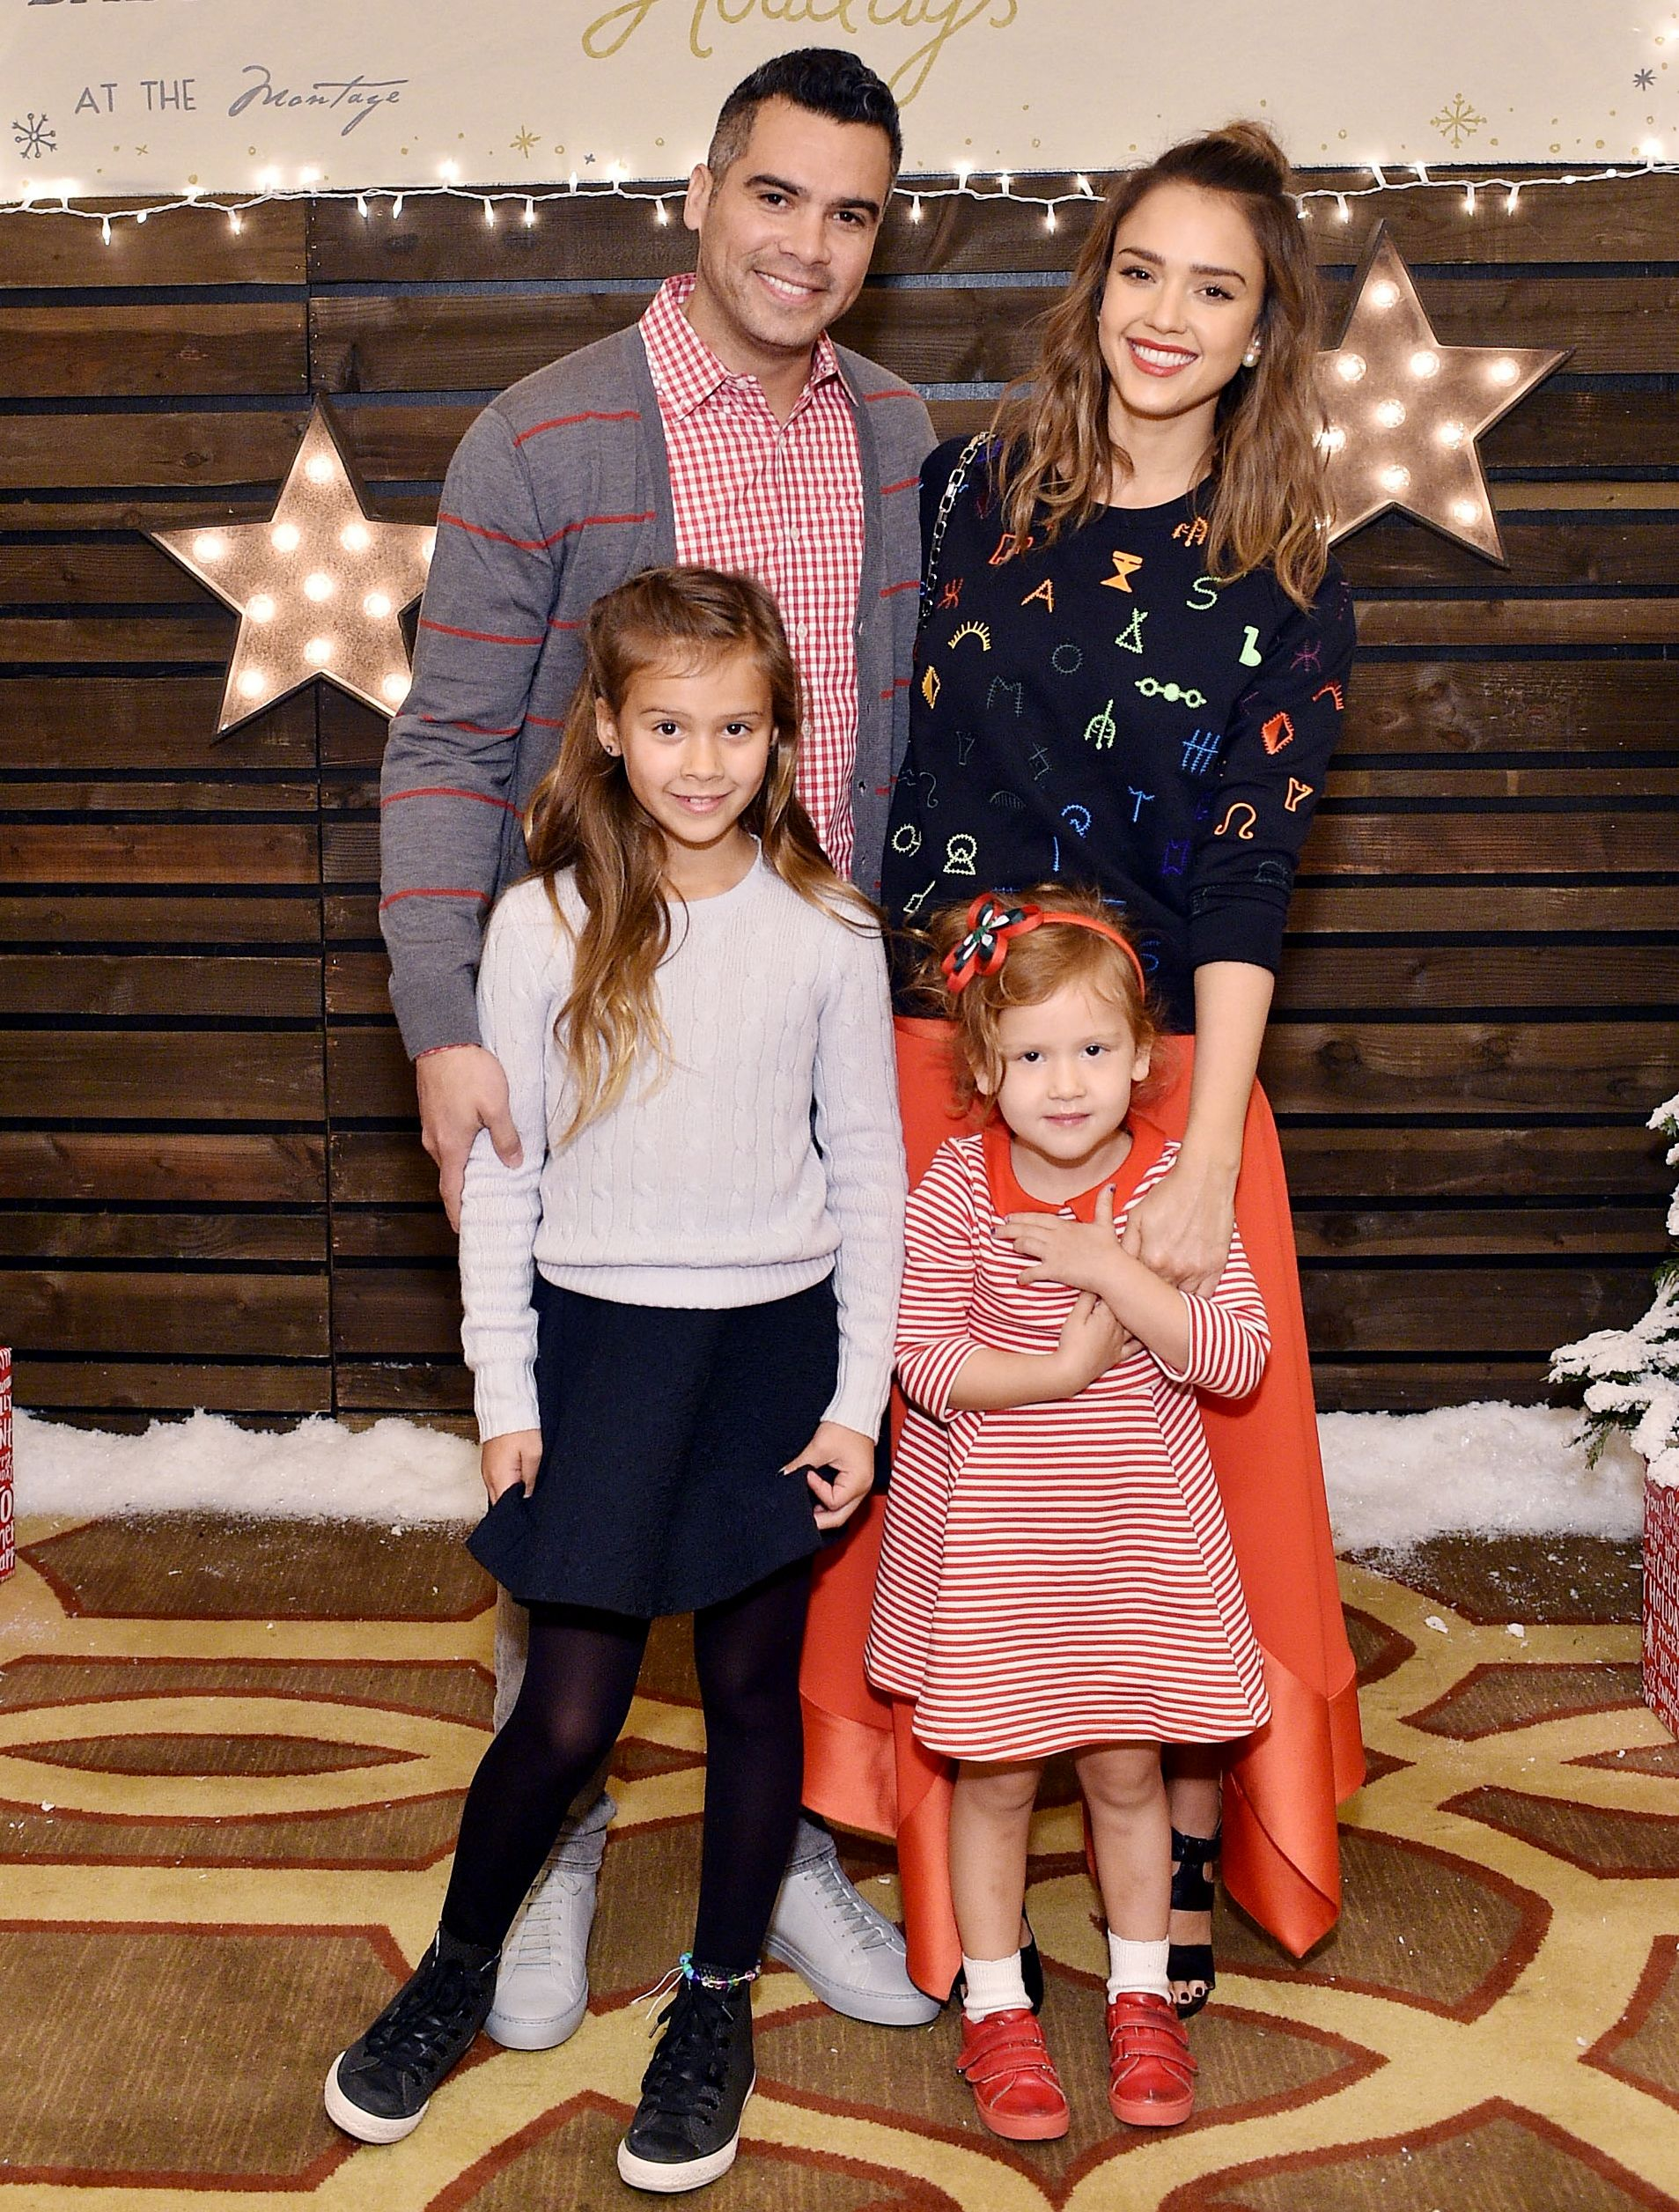 a027330aed9d8 Jessica Alba's Family Is Beyond Cute at Baby2Baby Event from InStyle.com